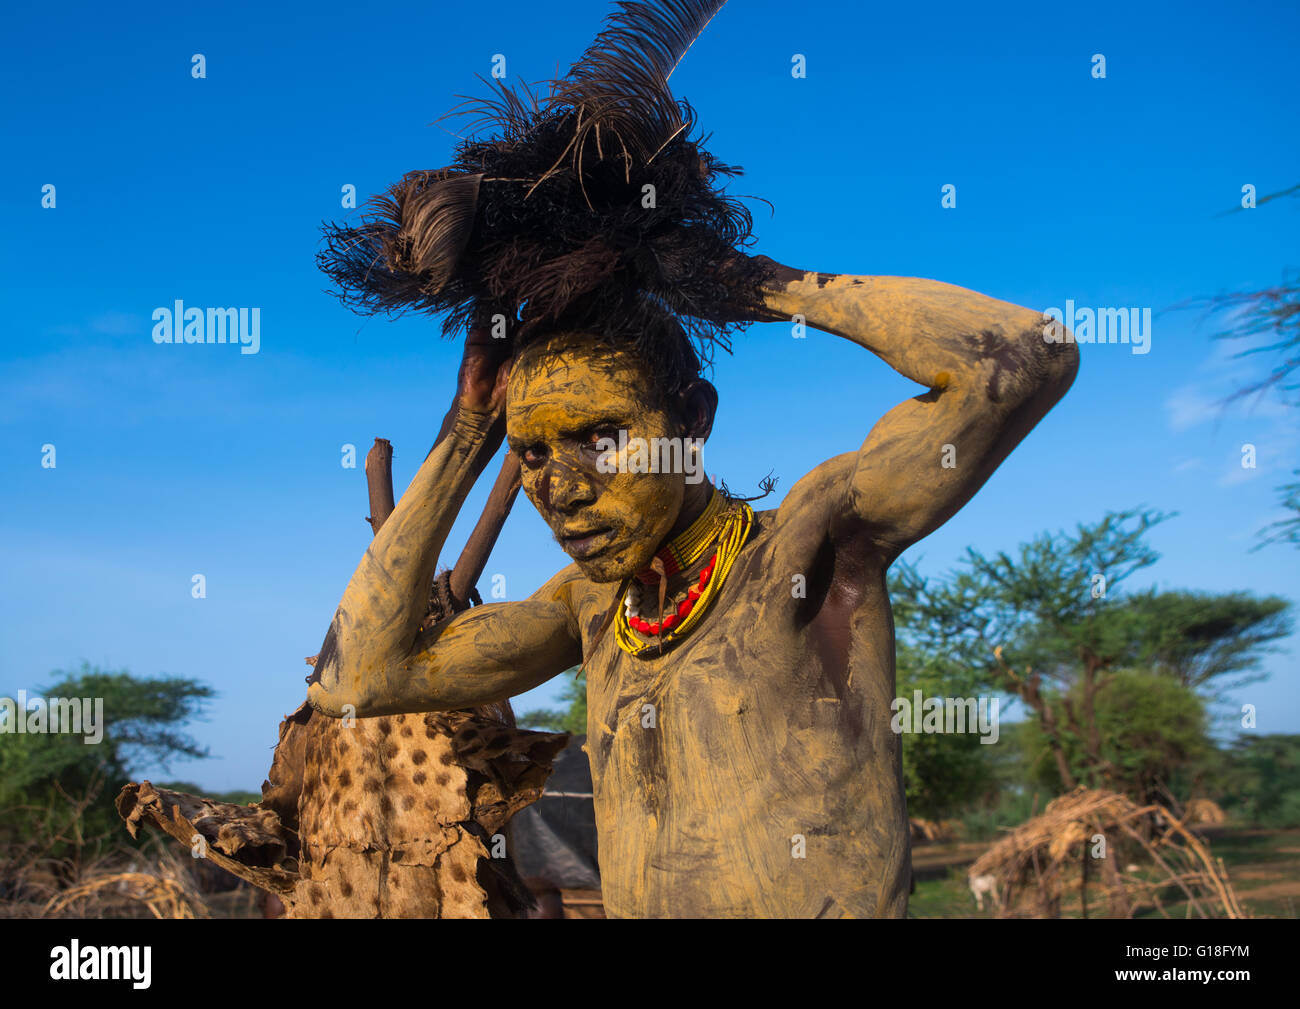 Dassanech man dressing with an ostrich feathers headwear for dimi ceremony to celebrate circumcision of the teenagers, - Stock Image